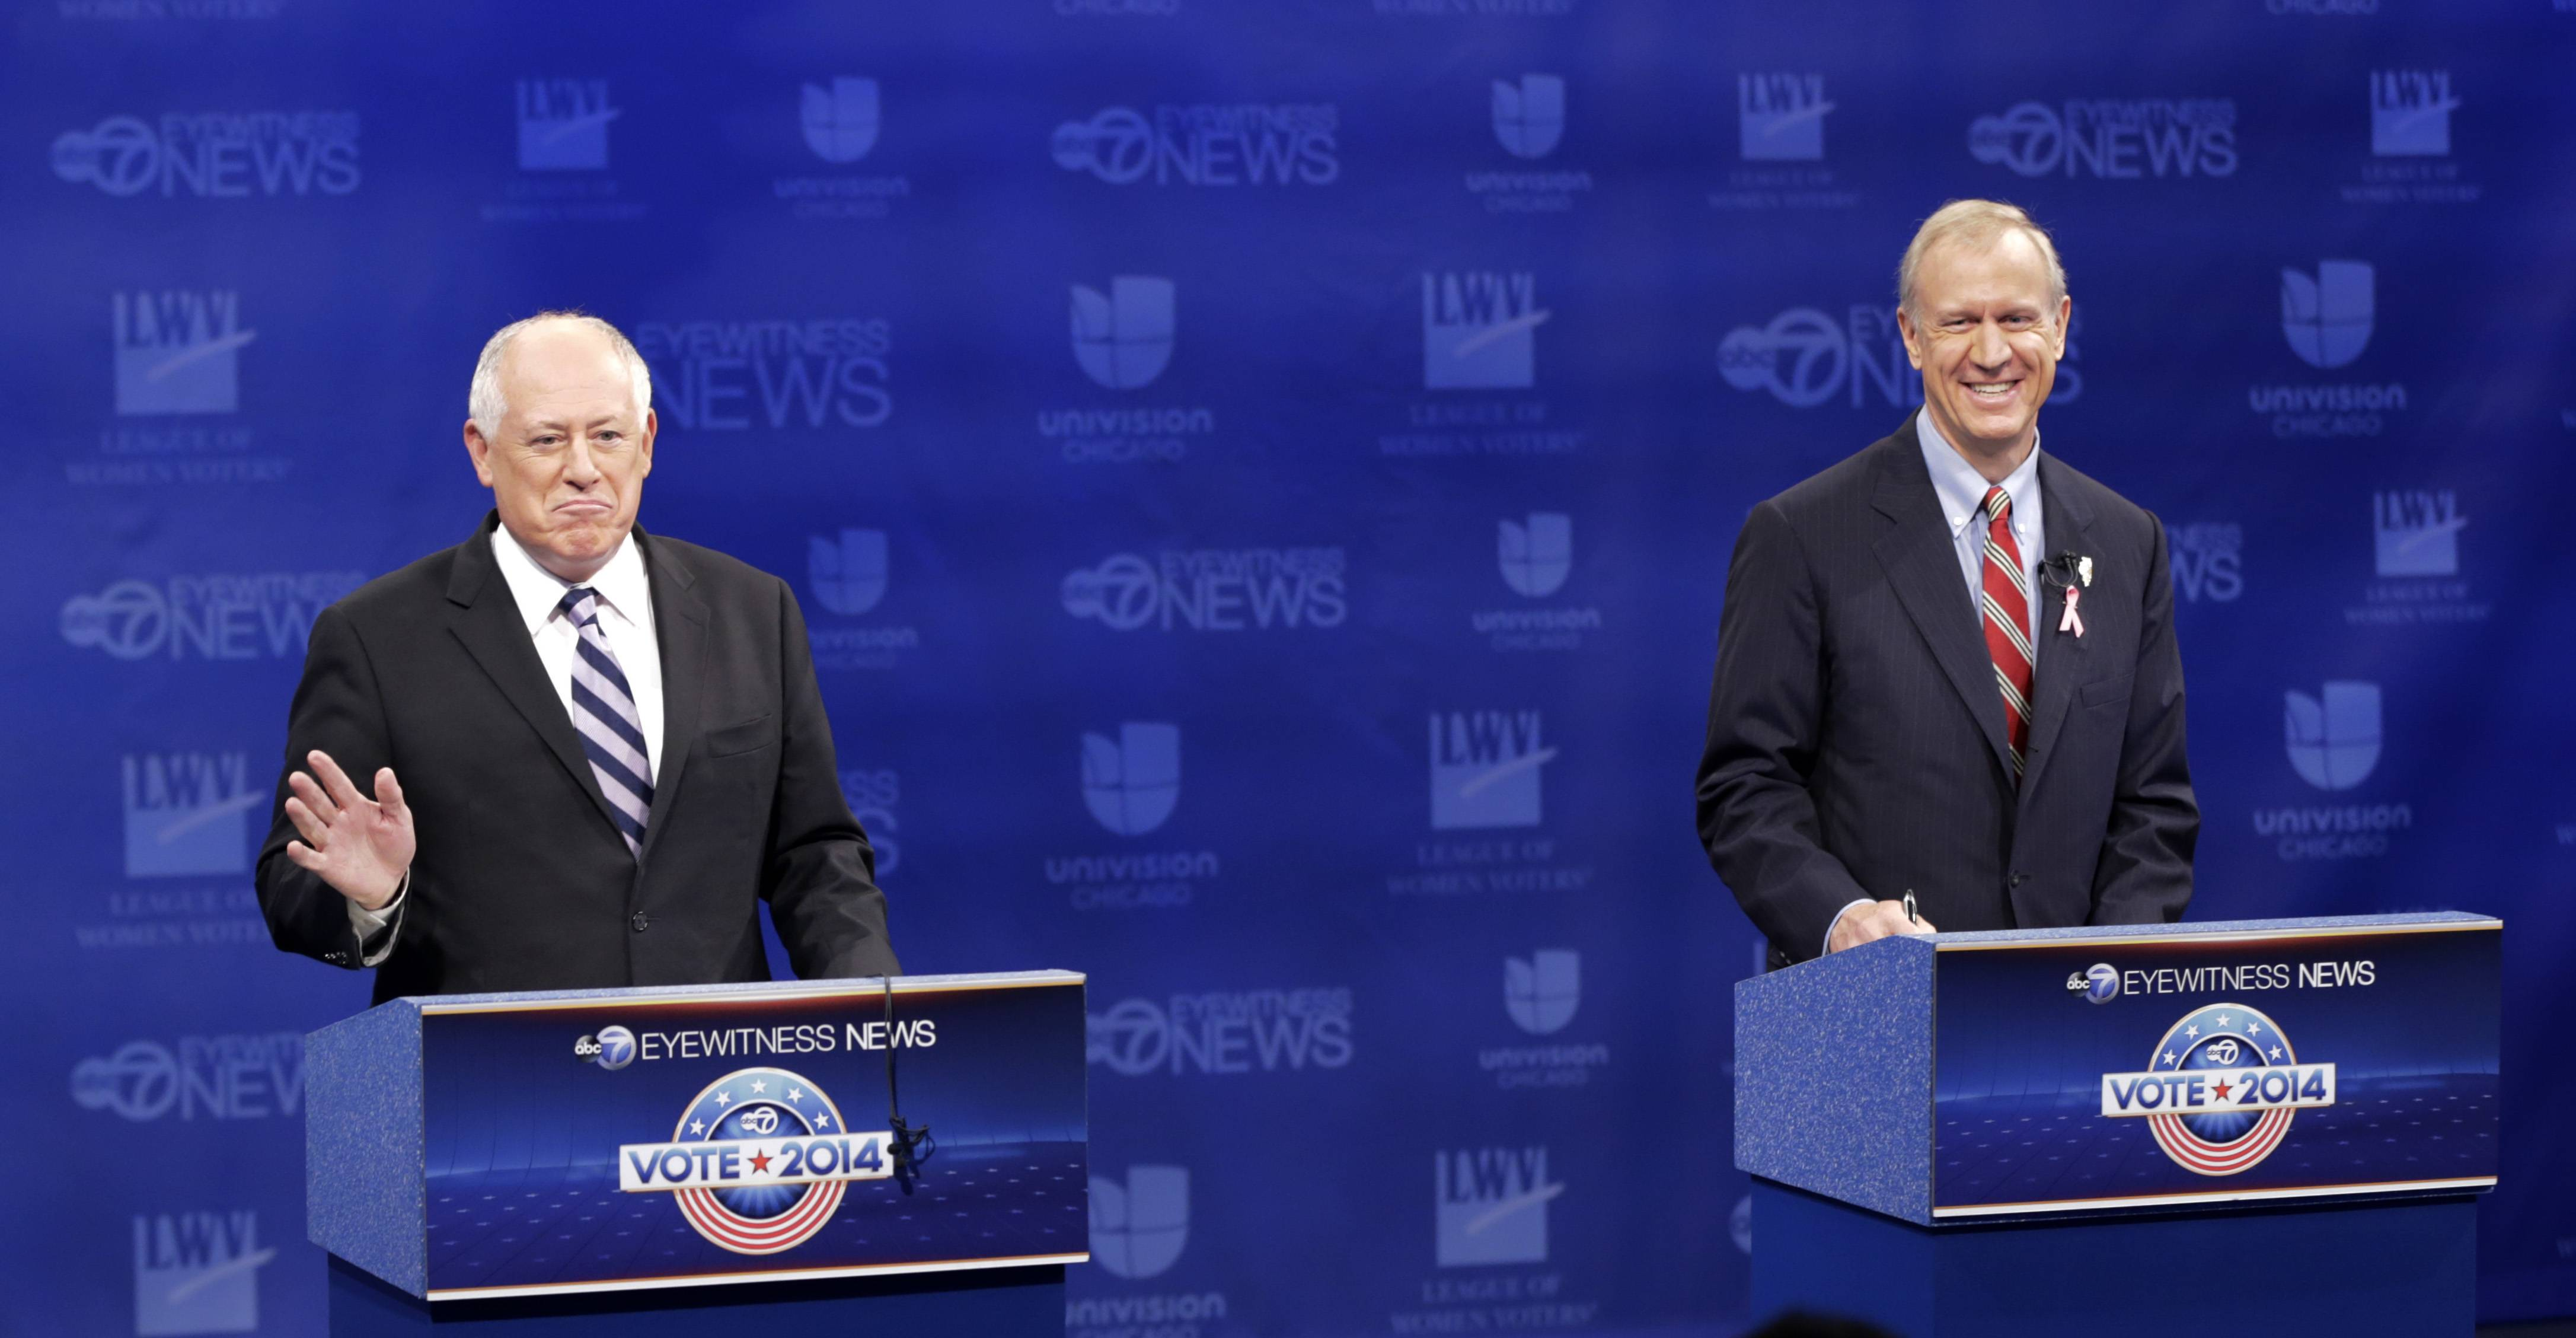 Illinois gubernatorial candidates Republican Bruce Rauner, left, and Democrat Gov. Pat Quinn greet before a debate at the DuSable Museum of African American History, Tuesday, Oct. 14, 2014, in Chicago. The debate is expected to focus on black voters. (AP Photo/Charles Rex Arbogast)